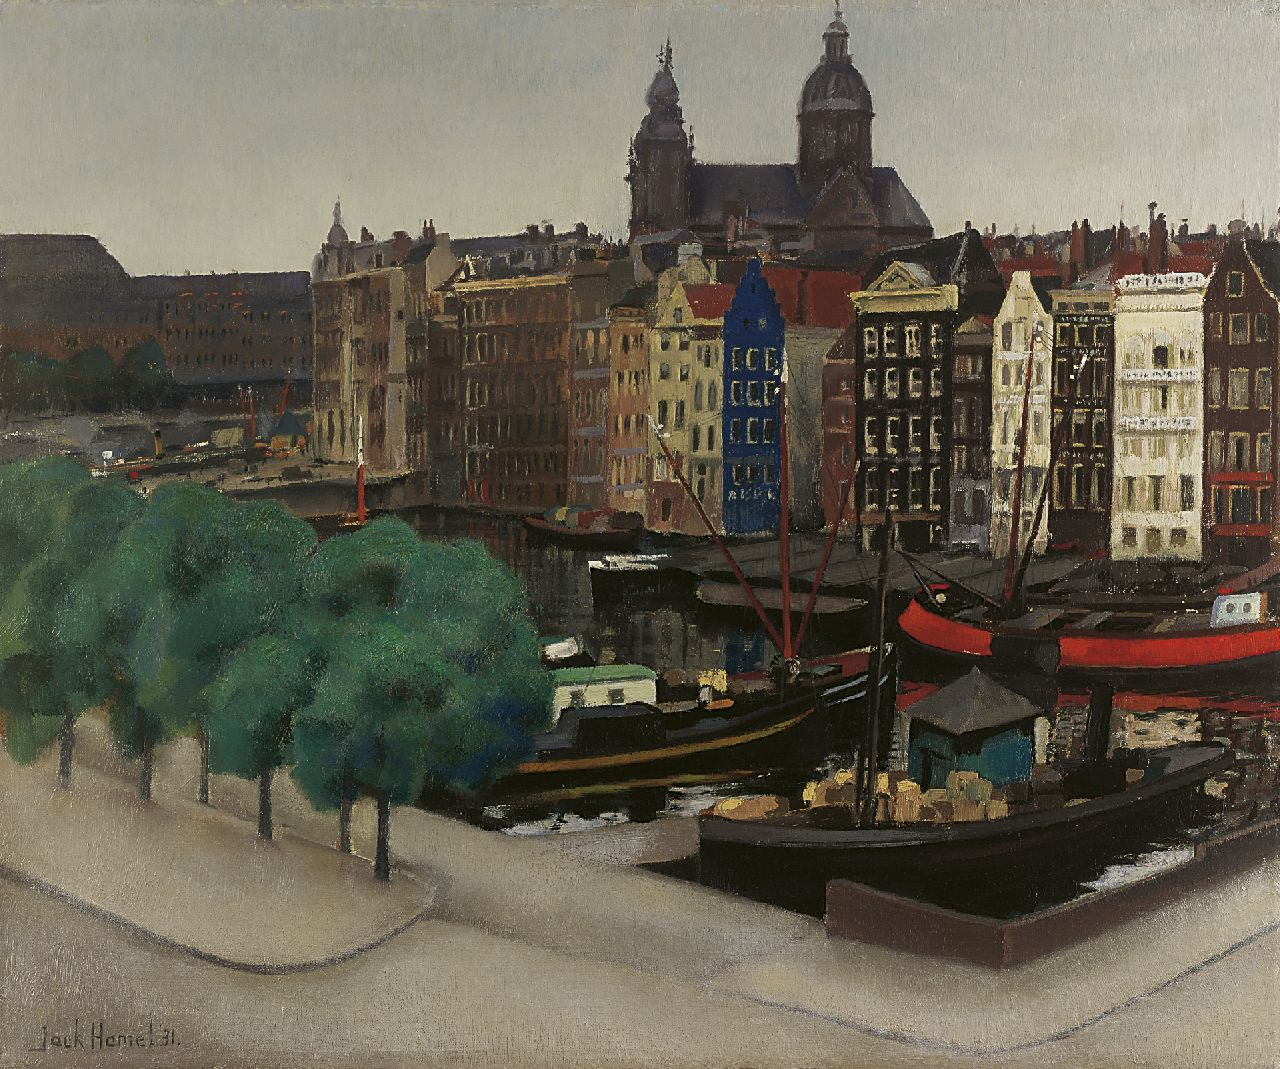 Hamel J.G.  | Jacobus Gerardus 'Jack' Hamel | Paintings offered for sale | A view of the Damrak with the St.-Nicolaaskerk, oil on canvas 50.3 x 60.0 cm, signed l.l. and dated '31